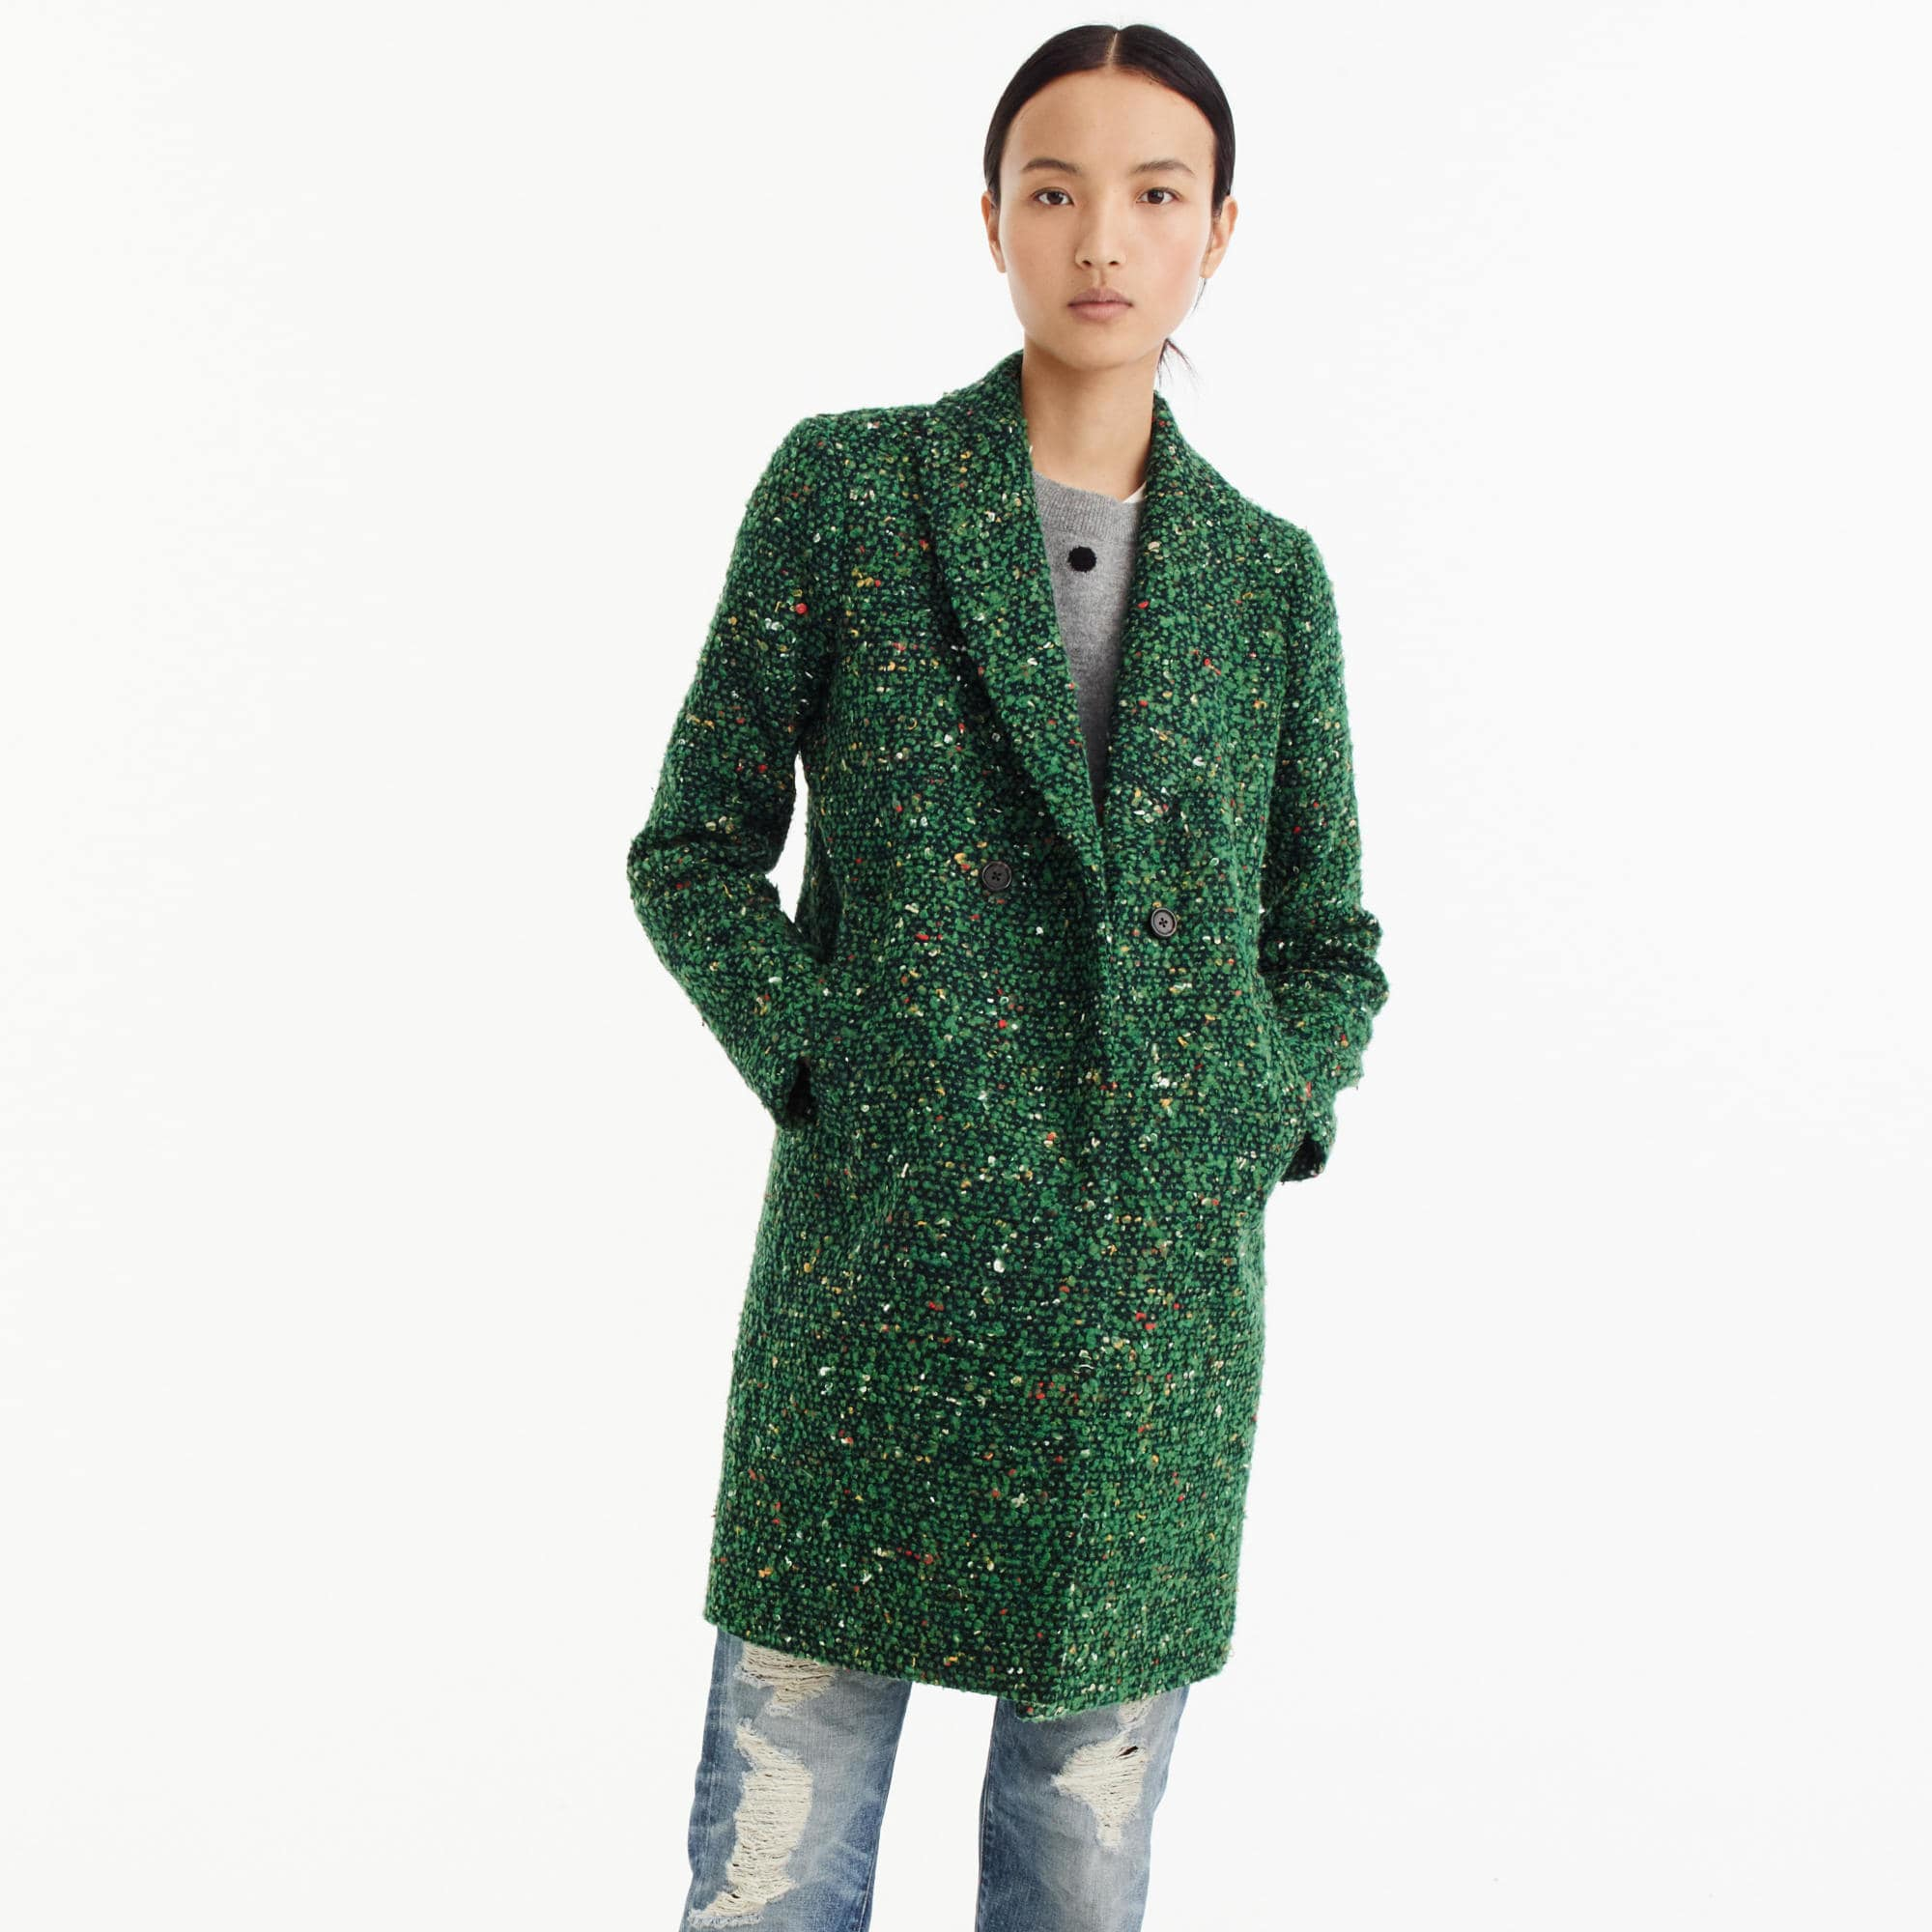 b6a6a34c7696 J Crew Coats New Arrivals Fall 2017 Shop